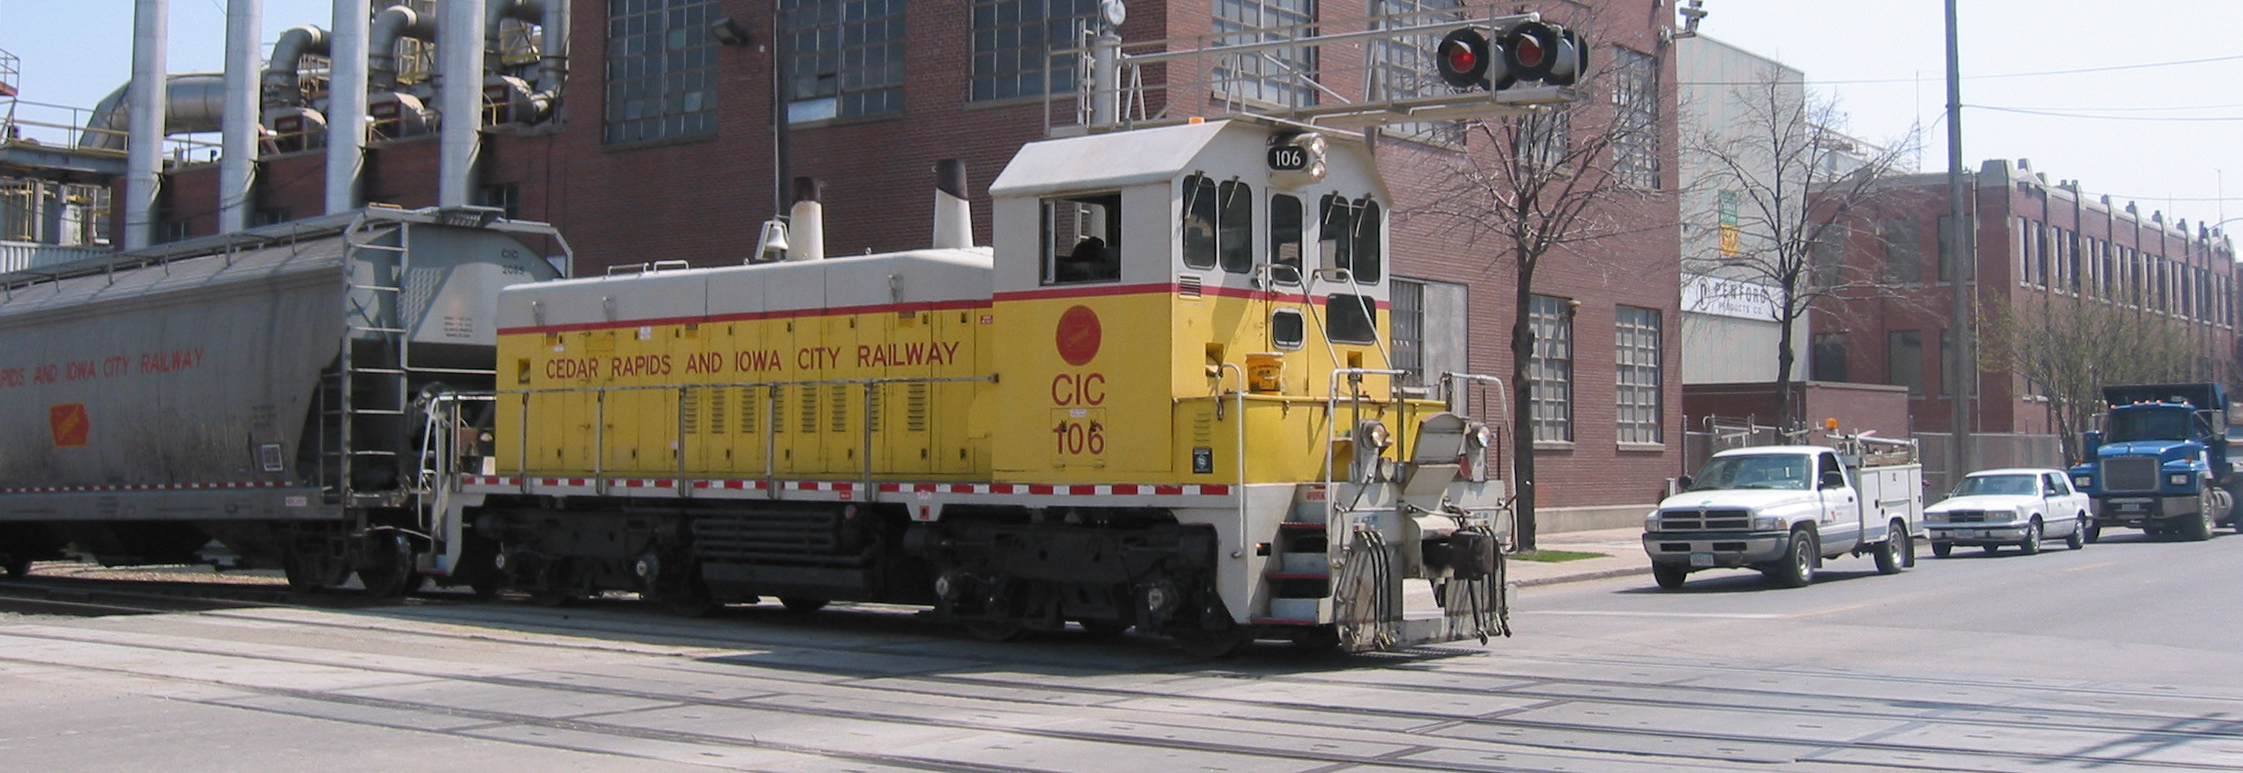 Modern photo of CRANDIC train